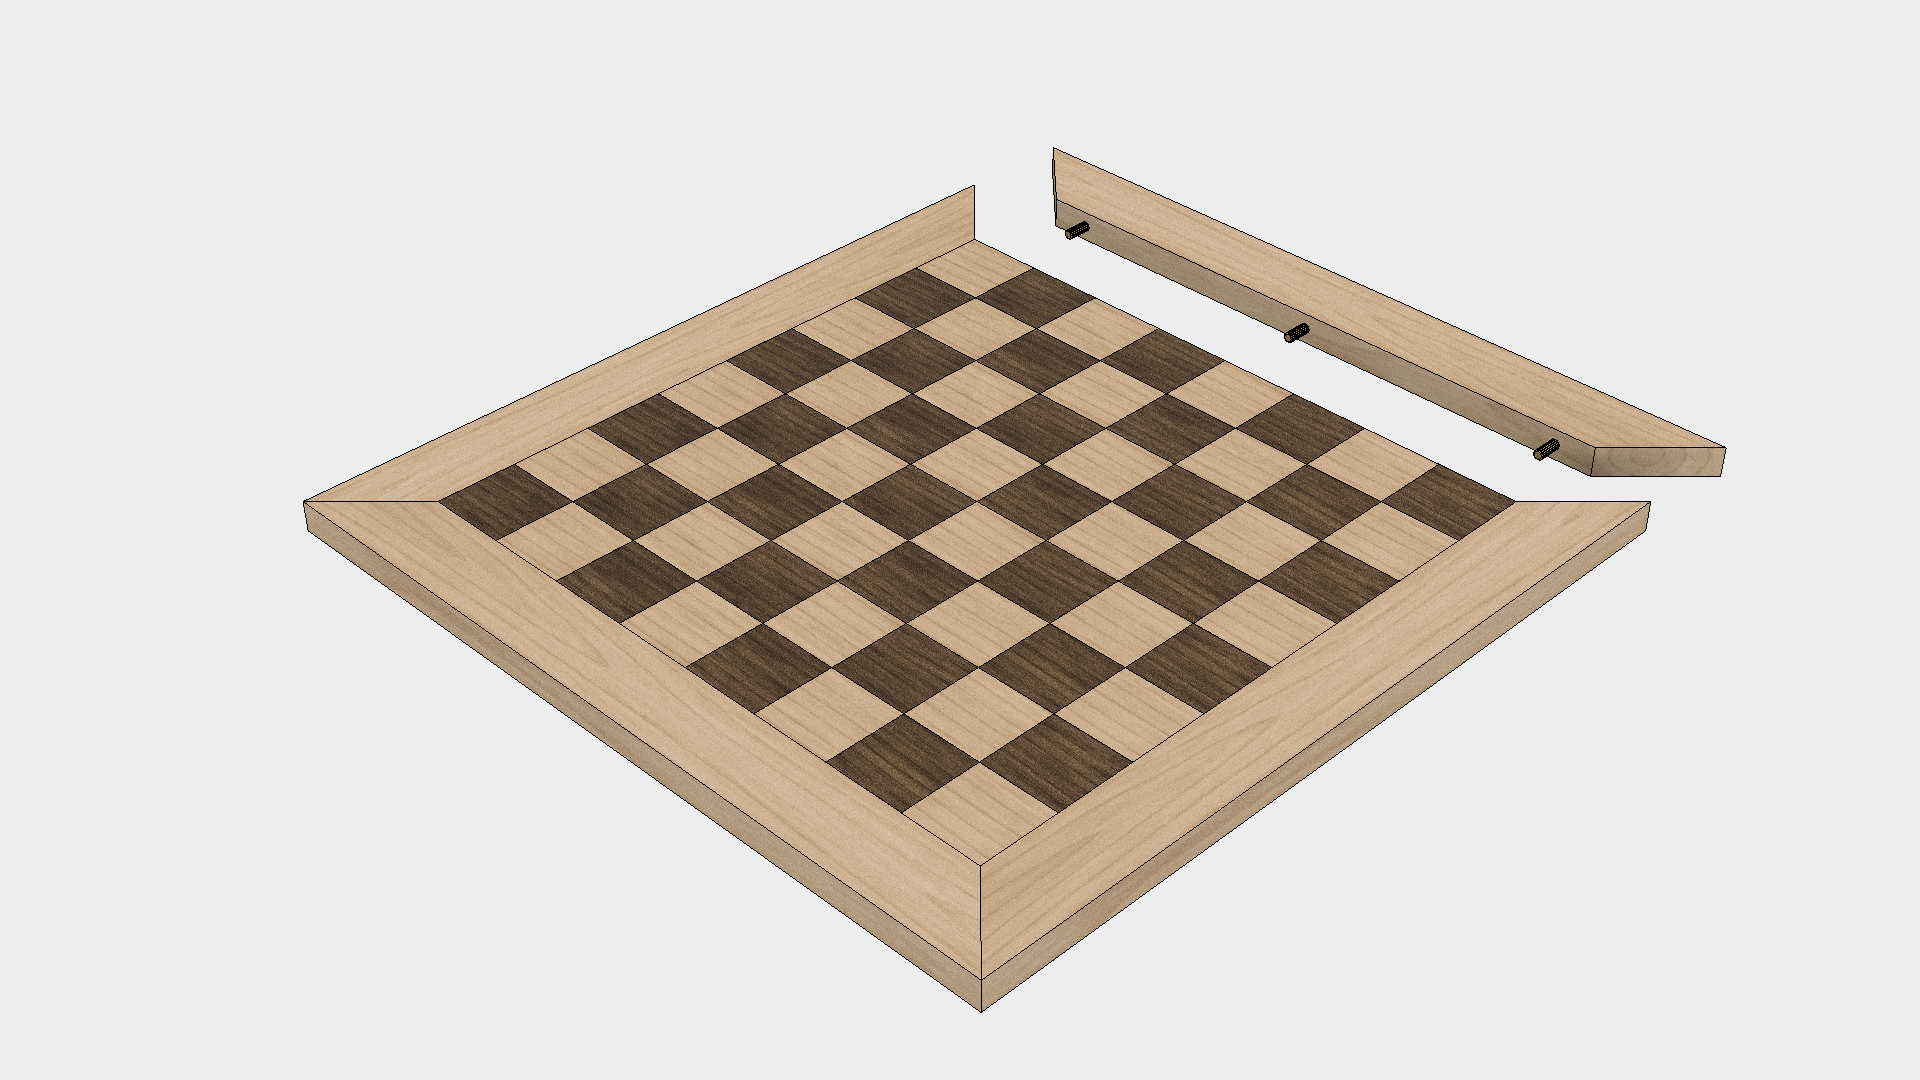 How to Make a Chess Board - Step 7